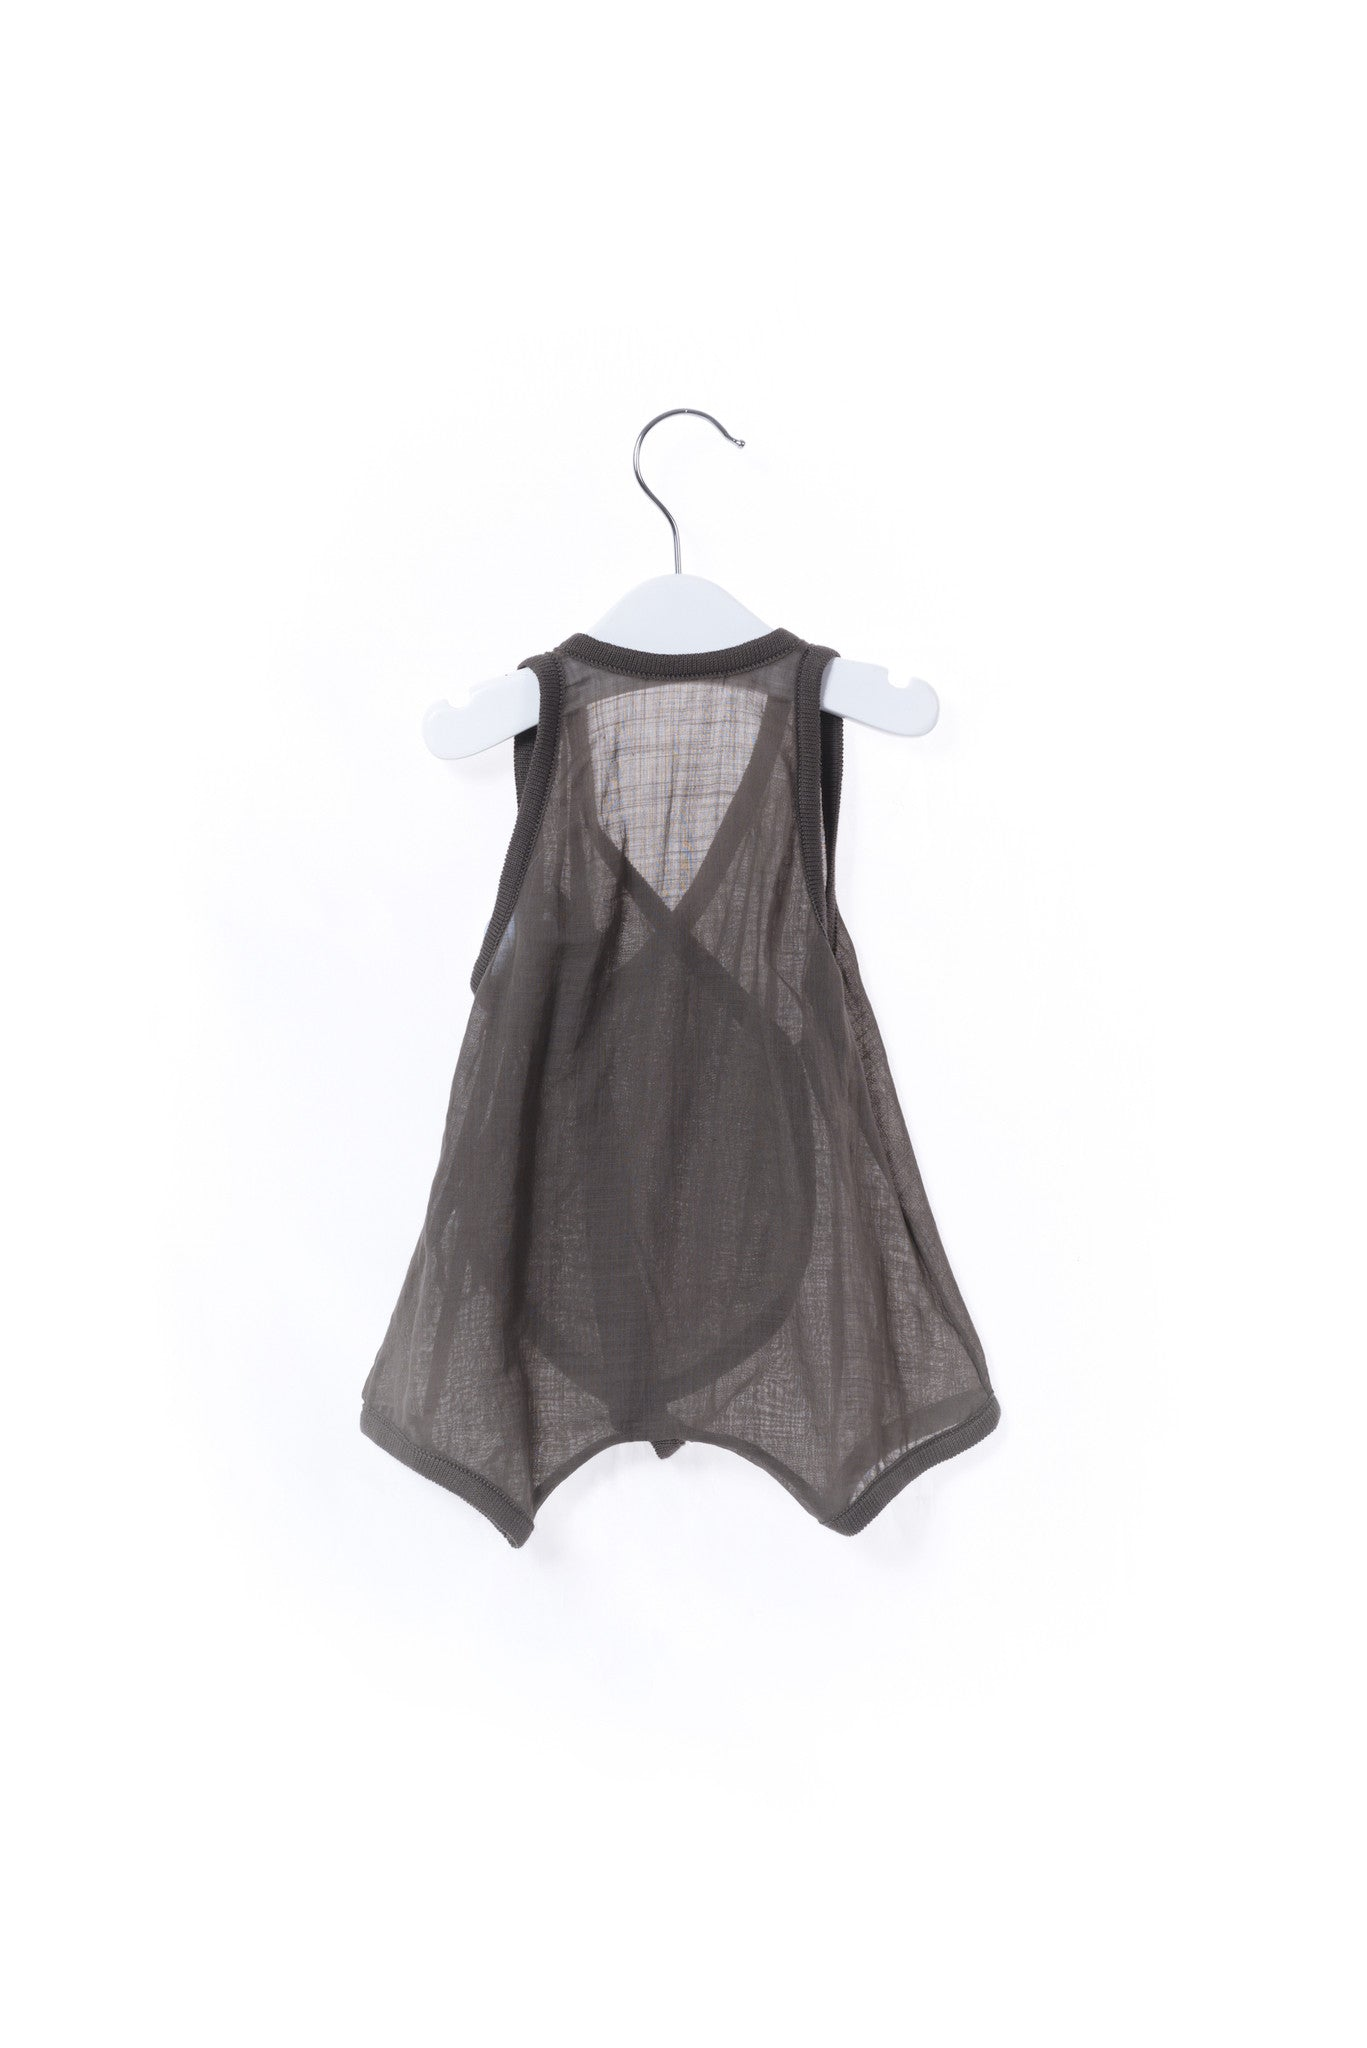 10001056 Pequeno Tocon Baby~Romper 0-3M at Retykle